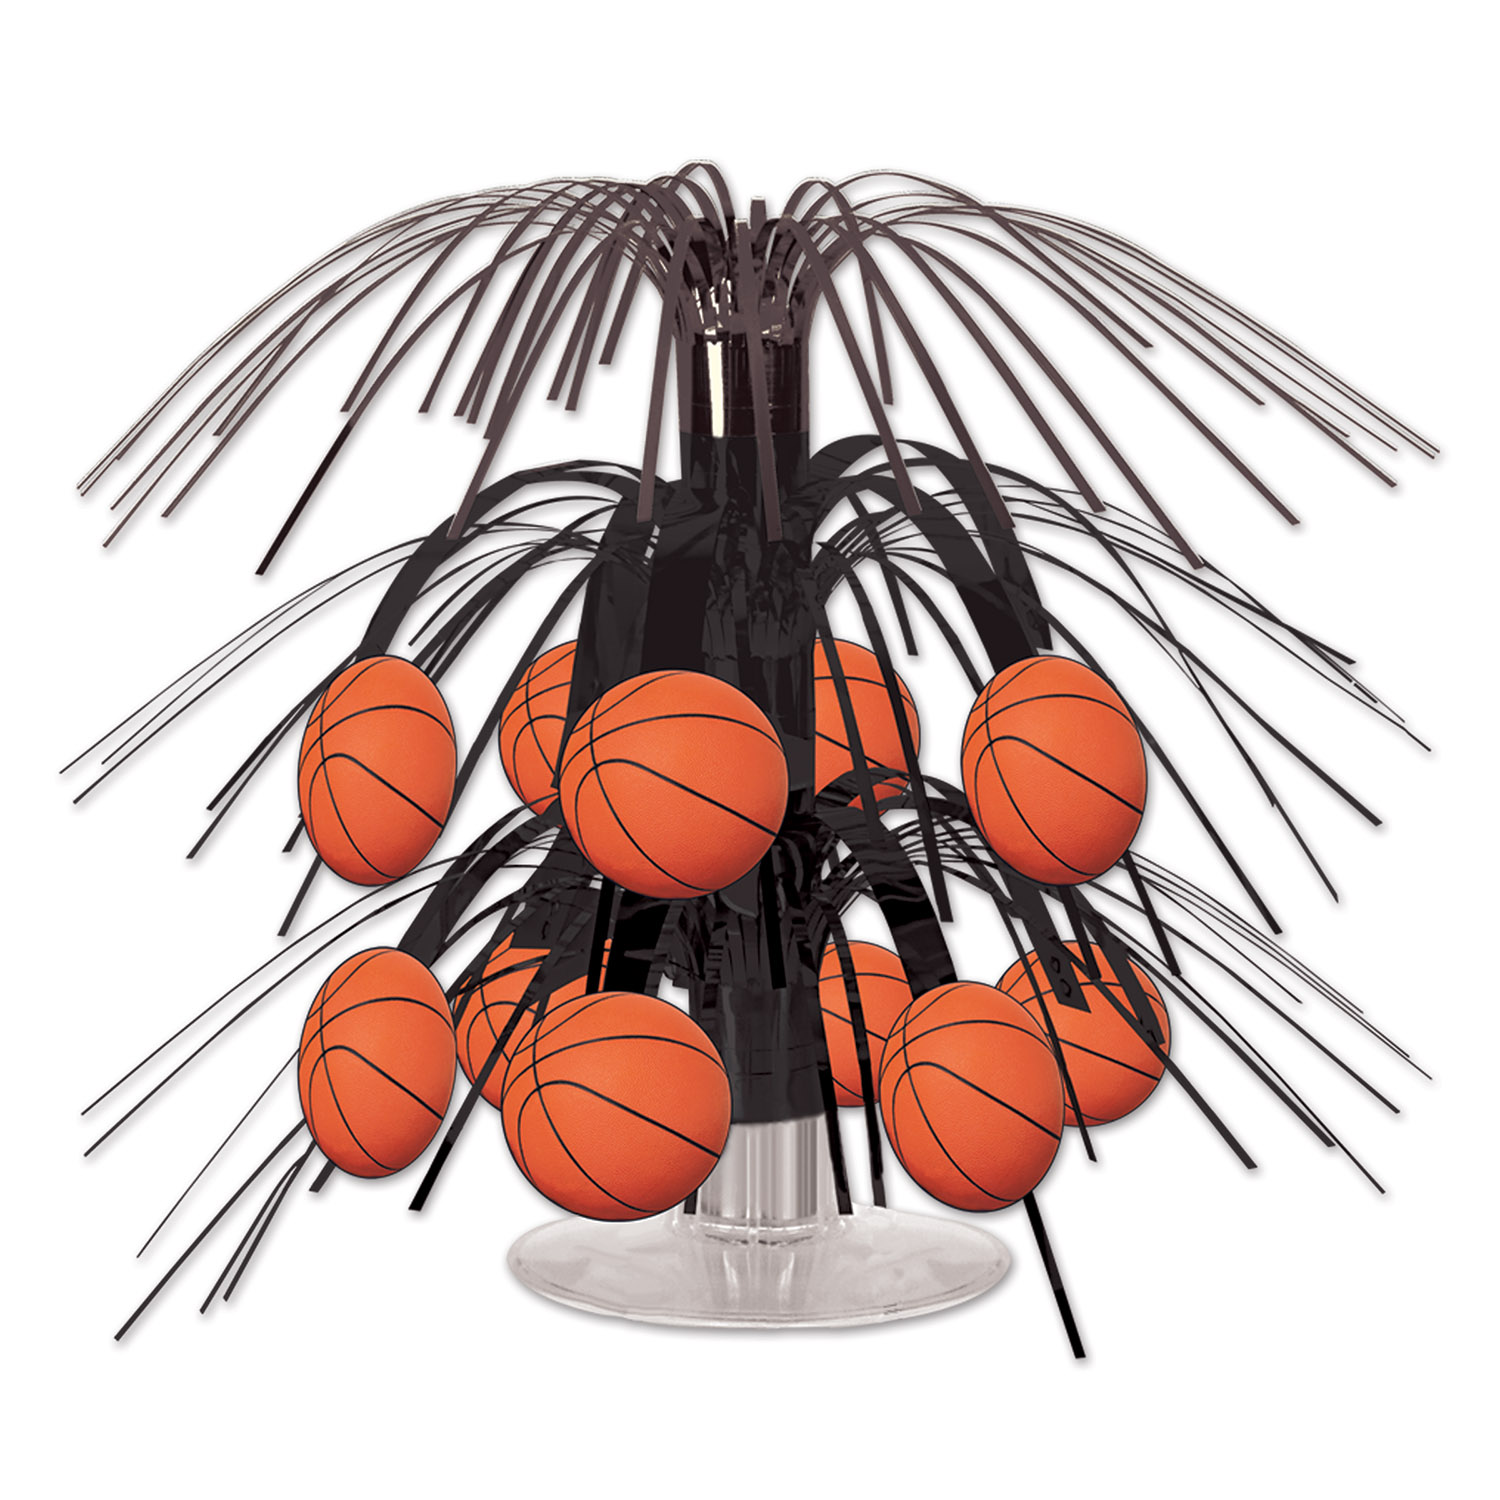 Basketball Mini Cascade Centerpiece (Pack of 12) sports, basketball, cascade, centerpiece, table top, balls, games, players, competition